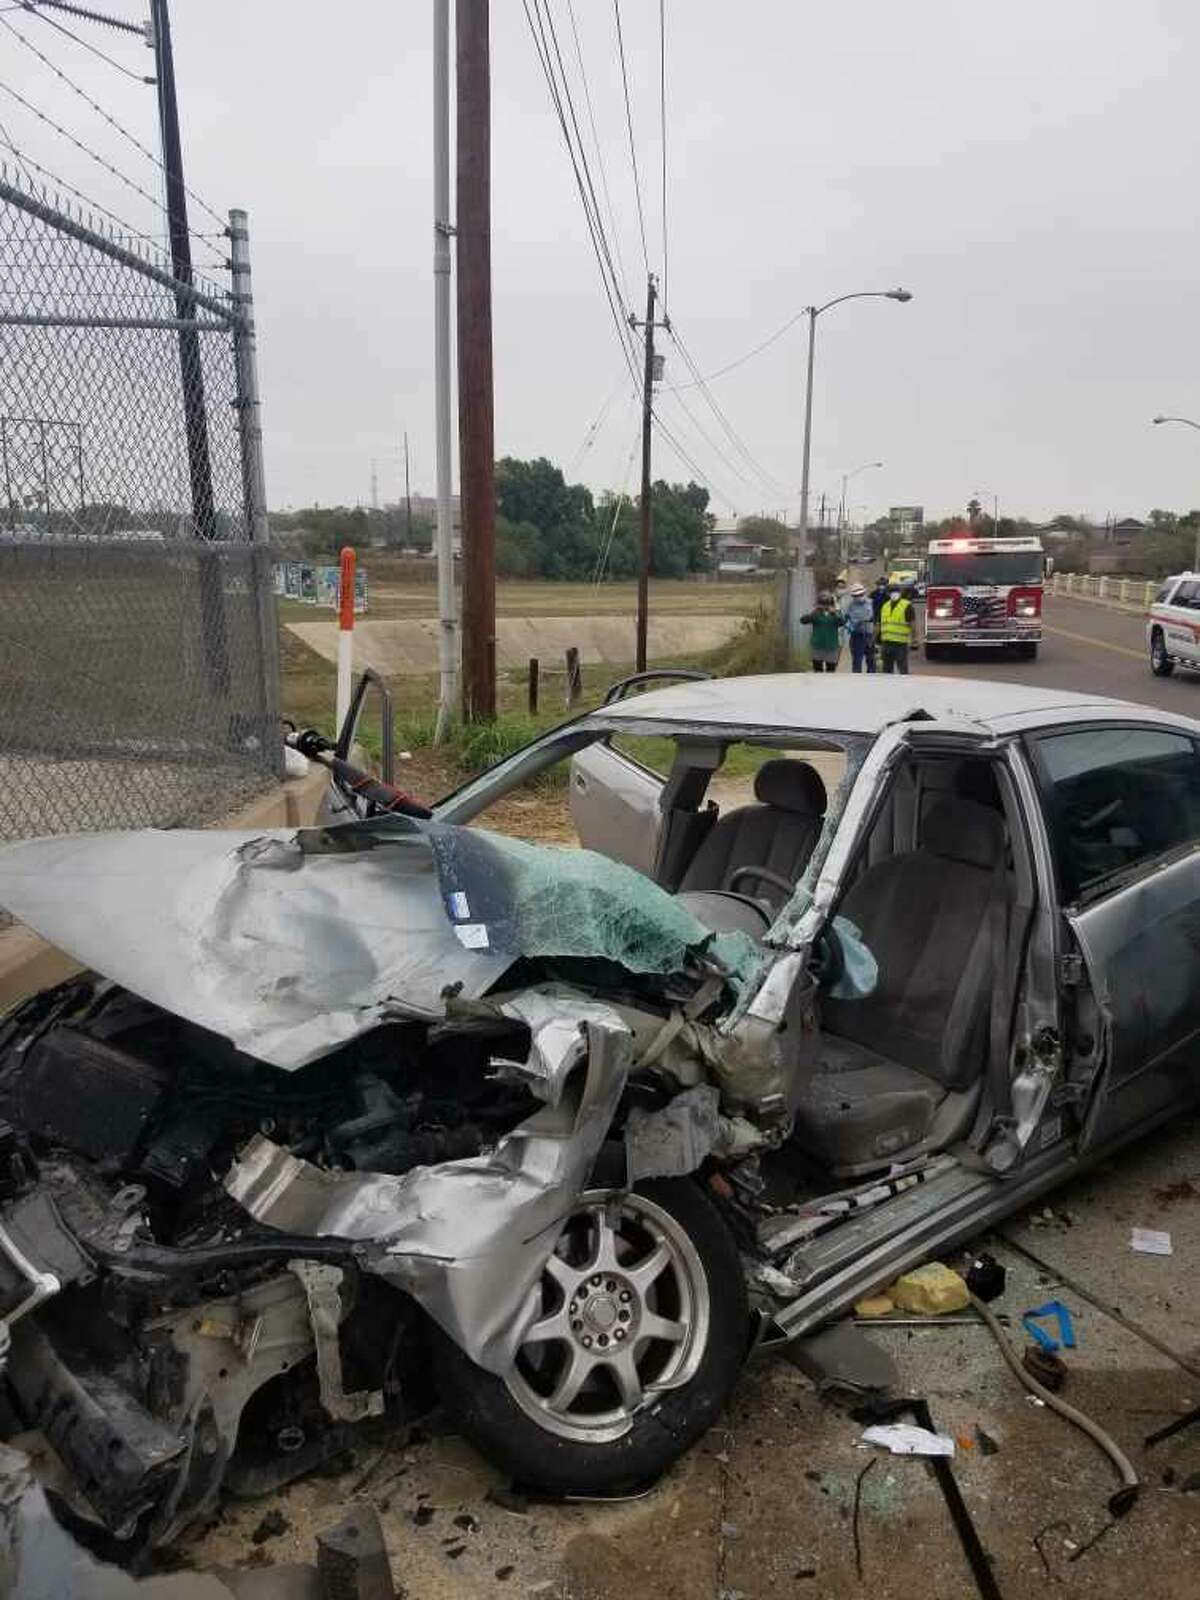 An elderly woman was taken to Laredo Medical Center in serious condition following a two-vehicle crash reported on Tuesday morning in the intersection of San Enrique Avenue and Washington Street. A 20-year-old woman was also taken to LMC but in stable condition.